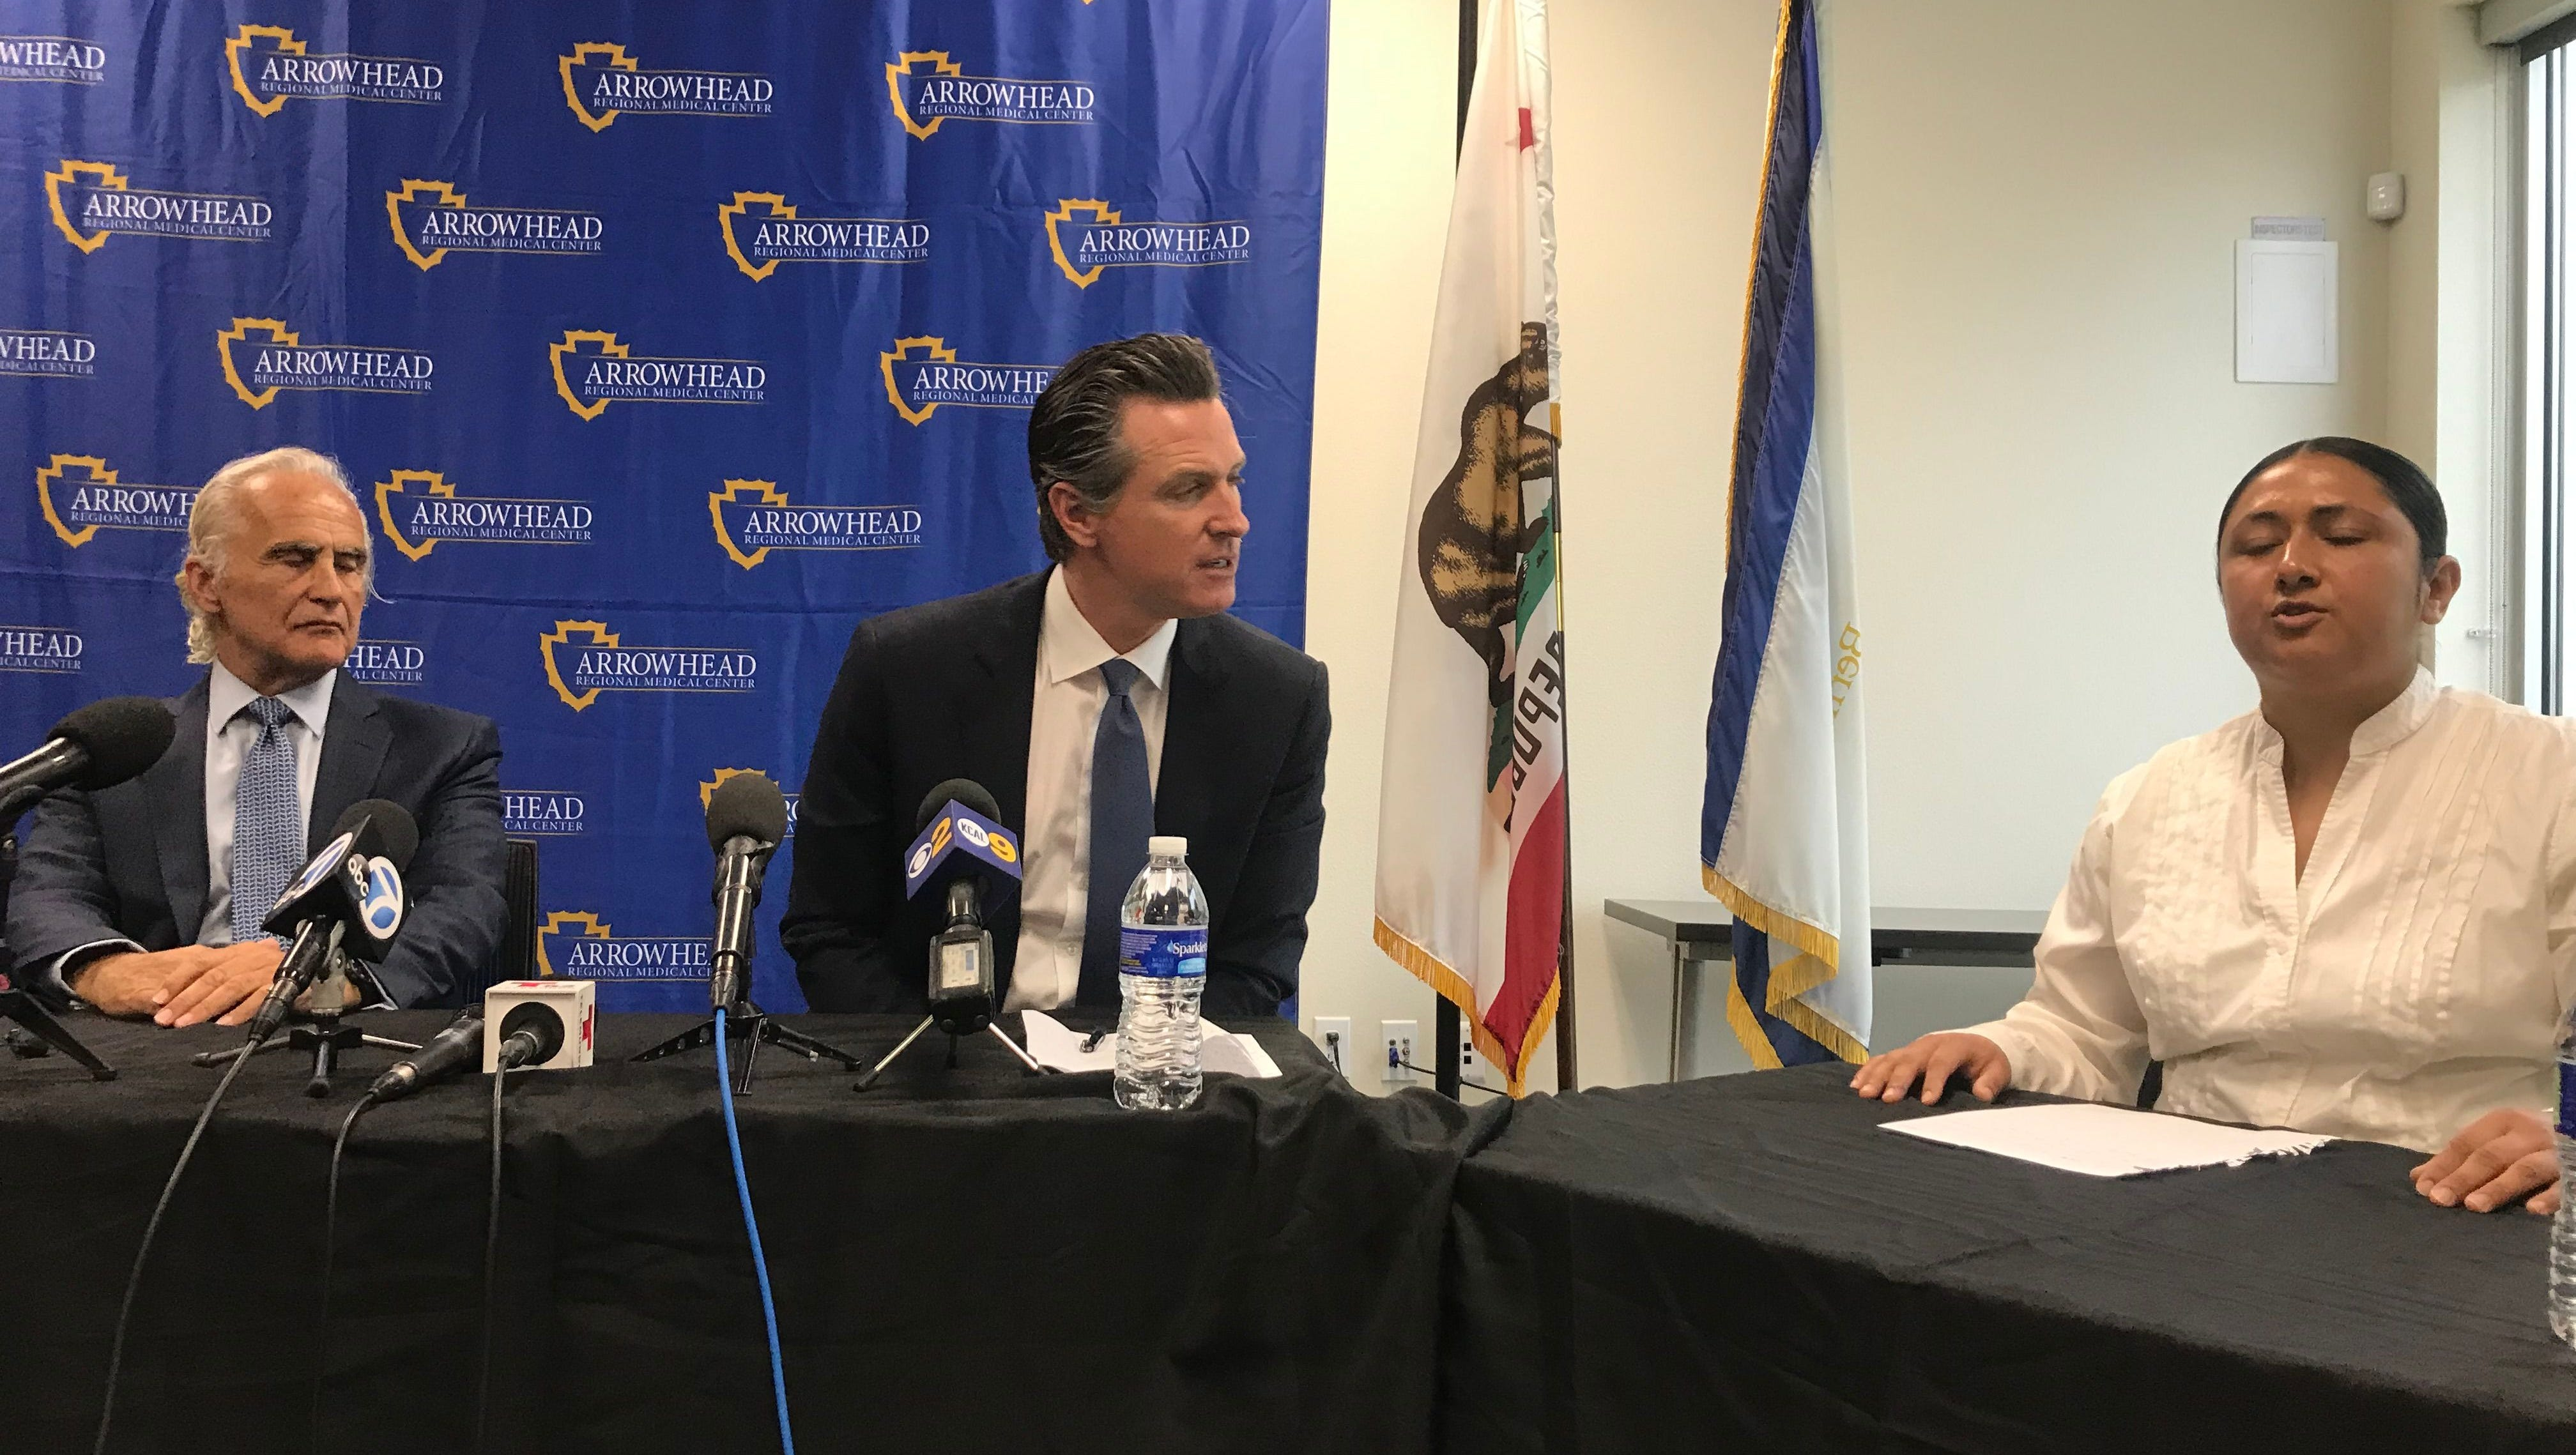 Homelessness in the valley: Gov. Newsom: 'You have my commitment that I won't cut homeless funding'